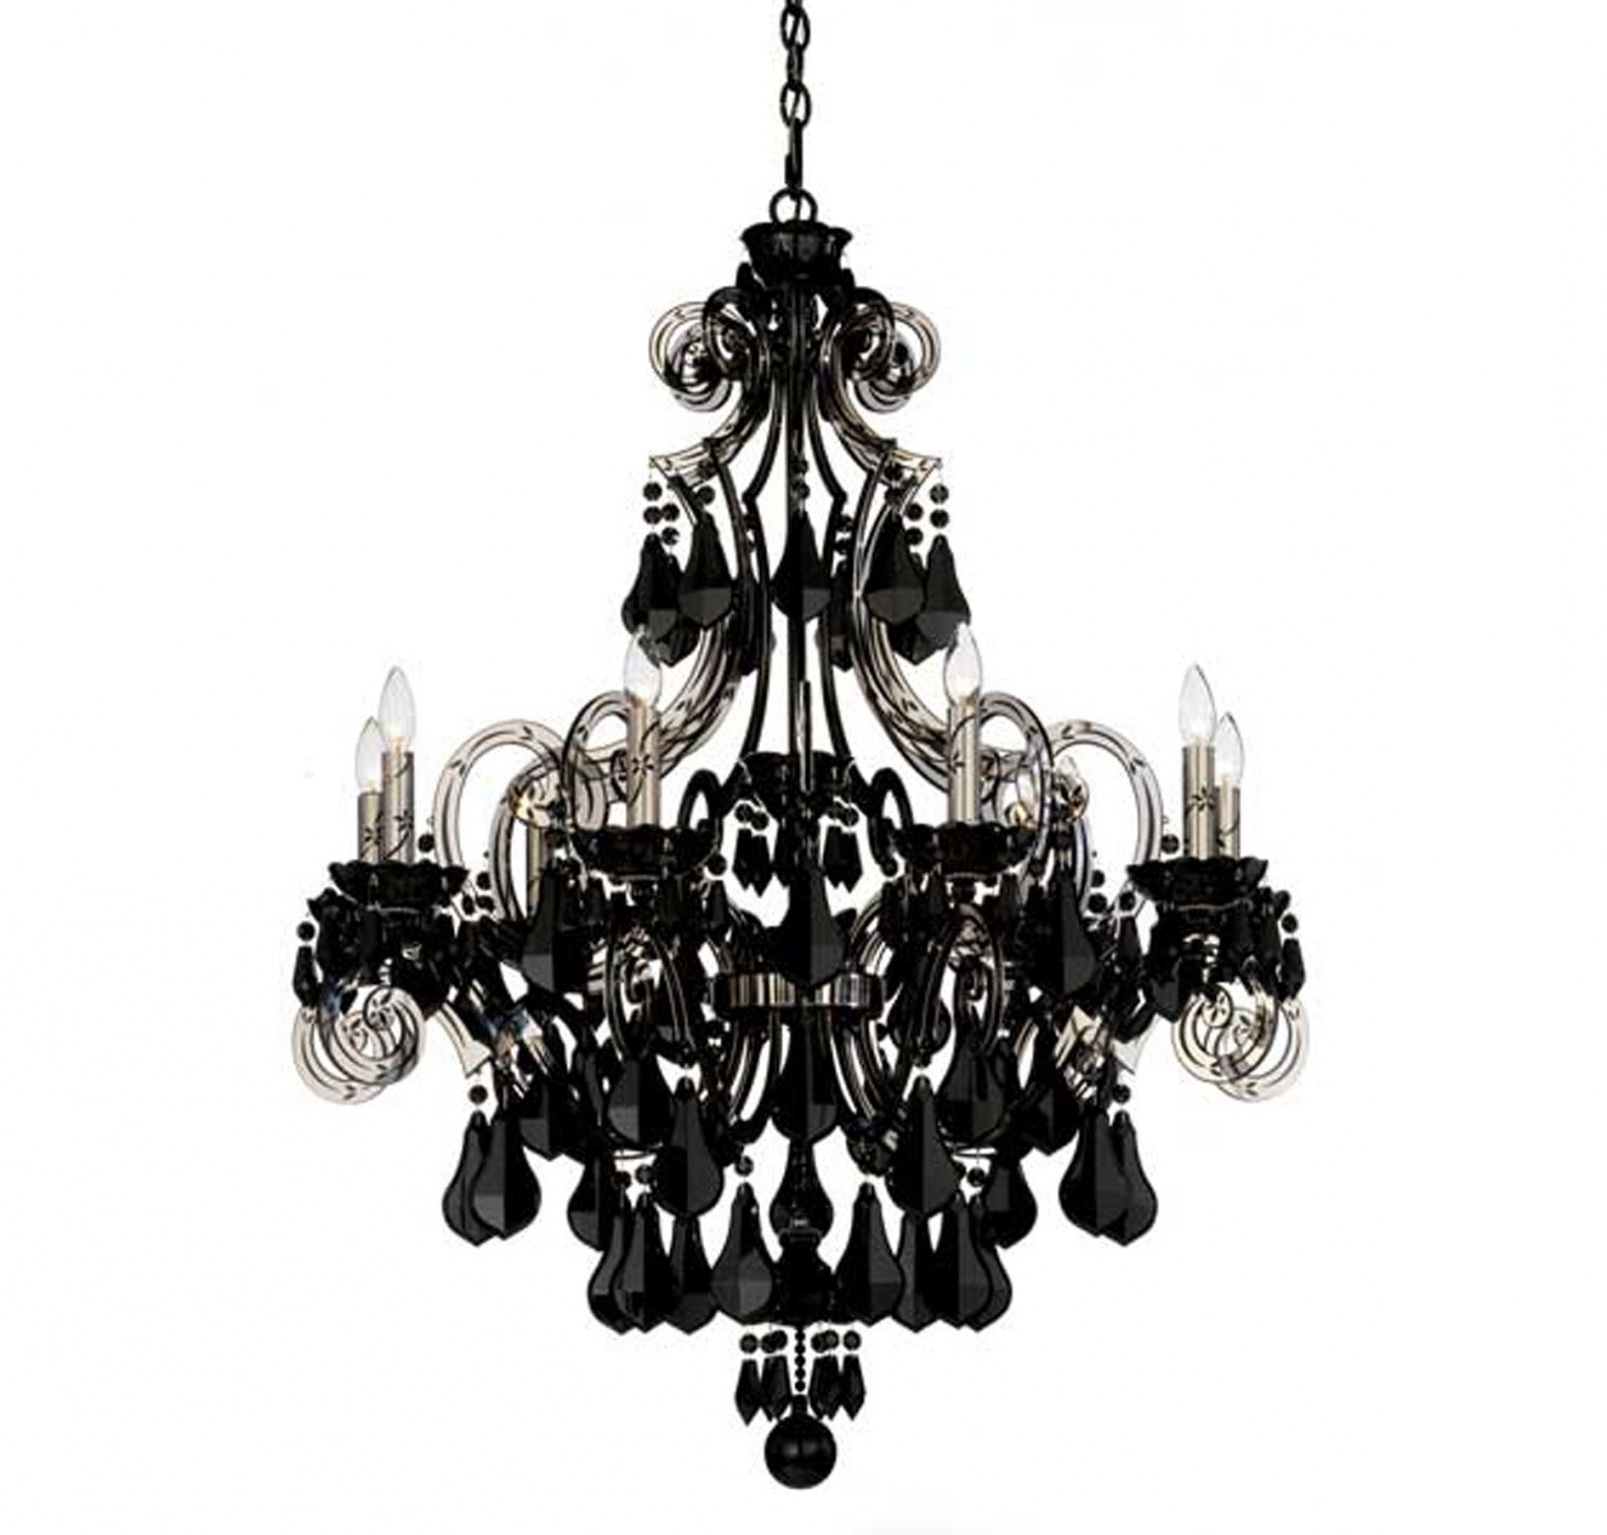 Most Recent Black Chandeliers For Photos: Schonbek Cappela 9 Light Black Chandelier In Chandeliers (View 20 of 20)